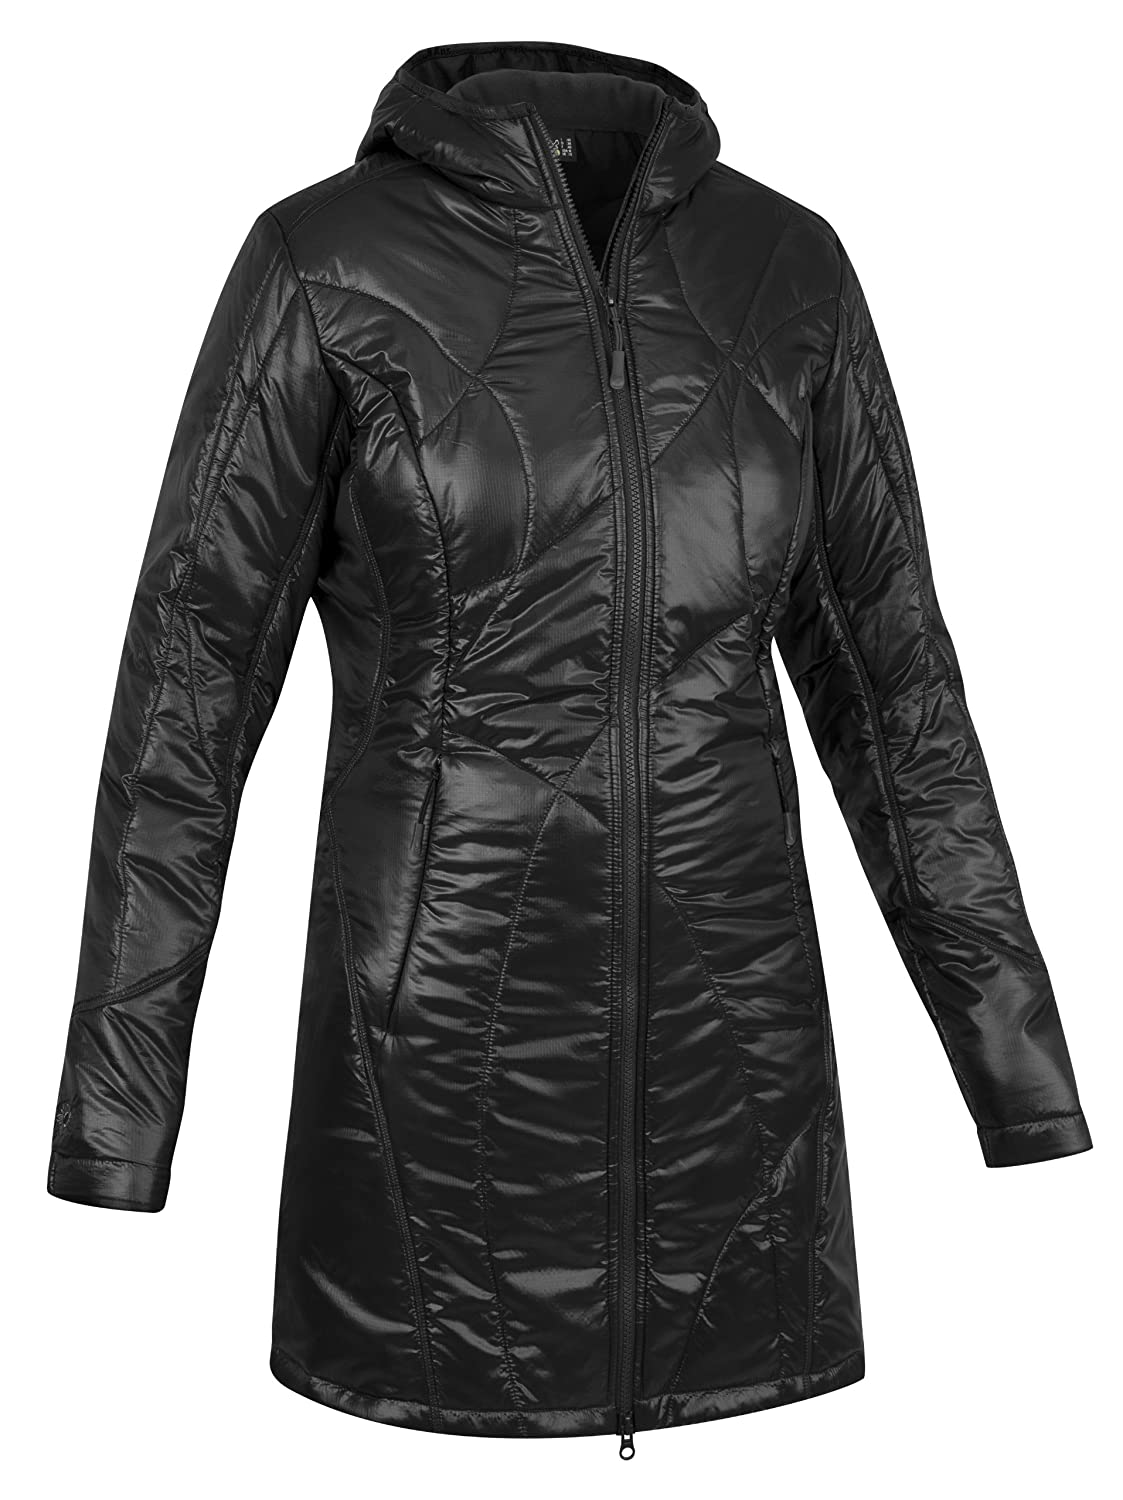 Salewa Damen Jacke Jacinth PRL